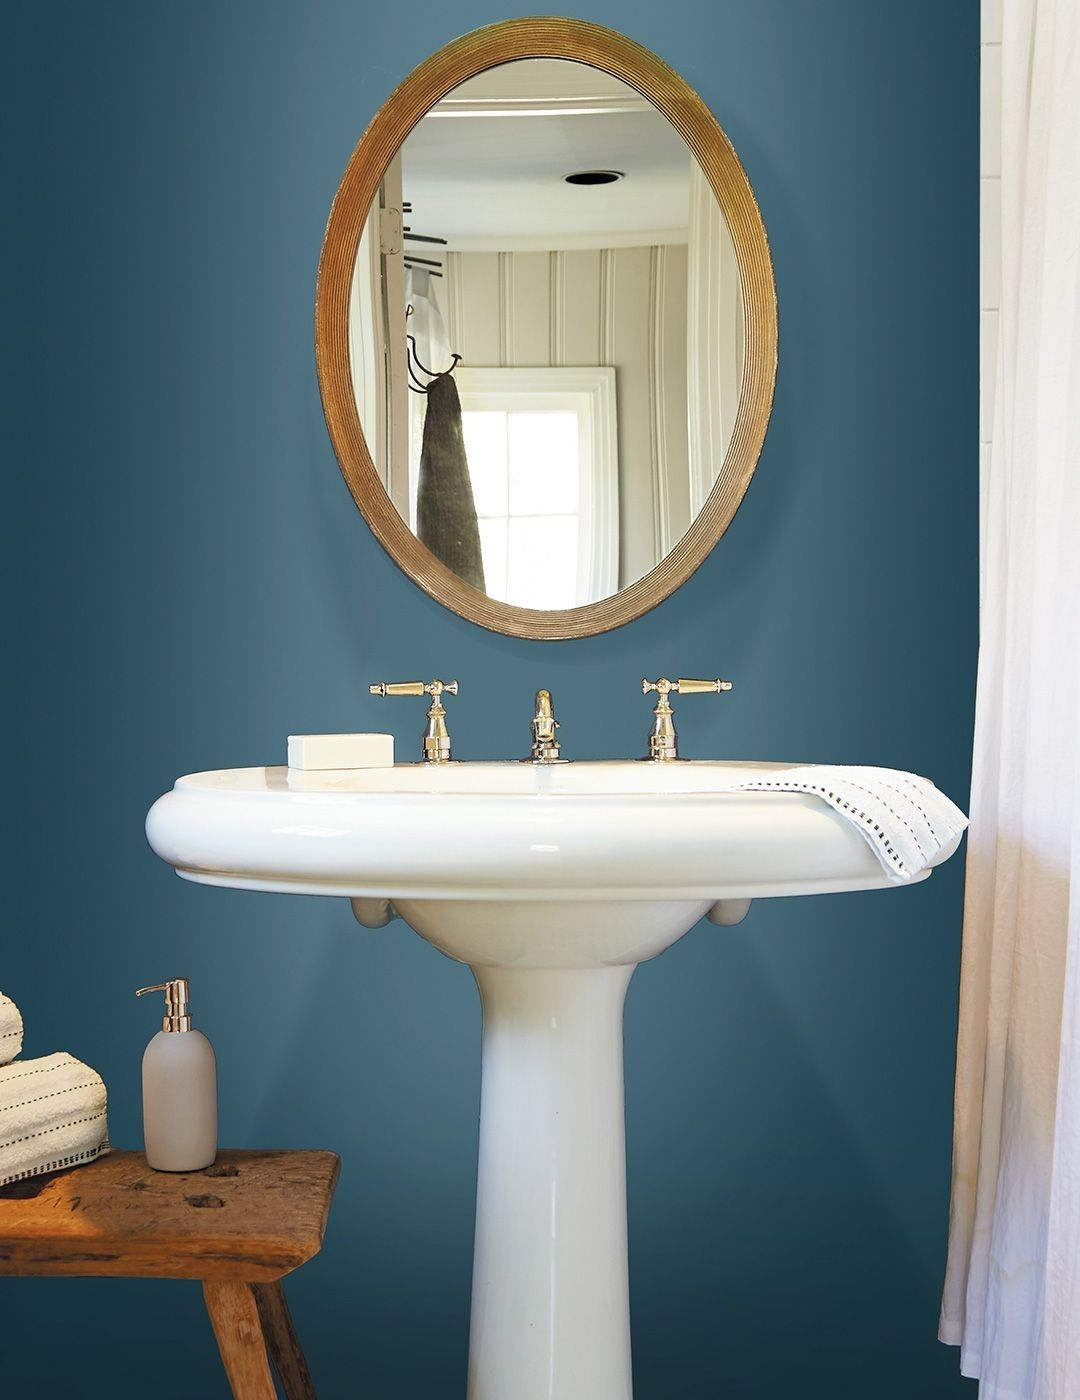 Pin By Trend4homy On Trending Decoration In 2019: Pin By Lenny Goddard On Bathroom Decor Ideas In 2019